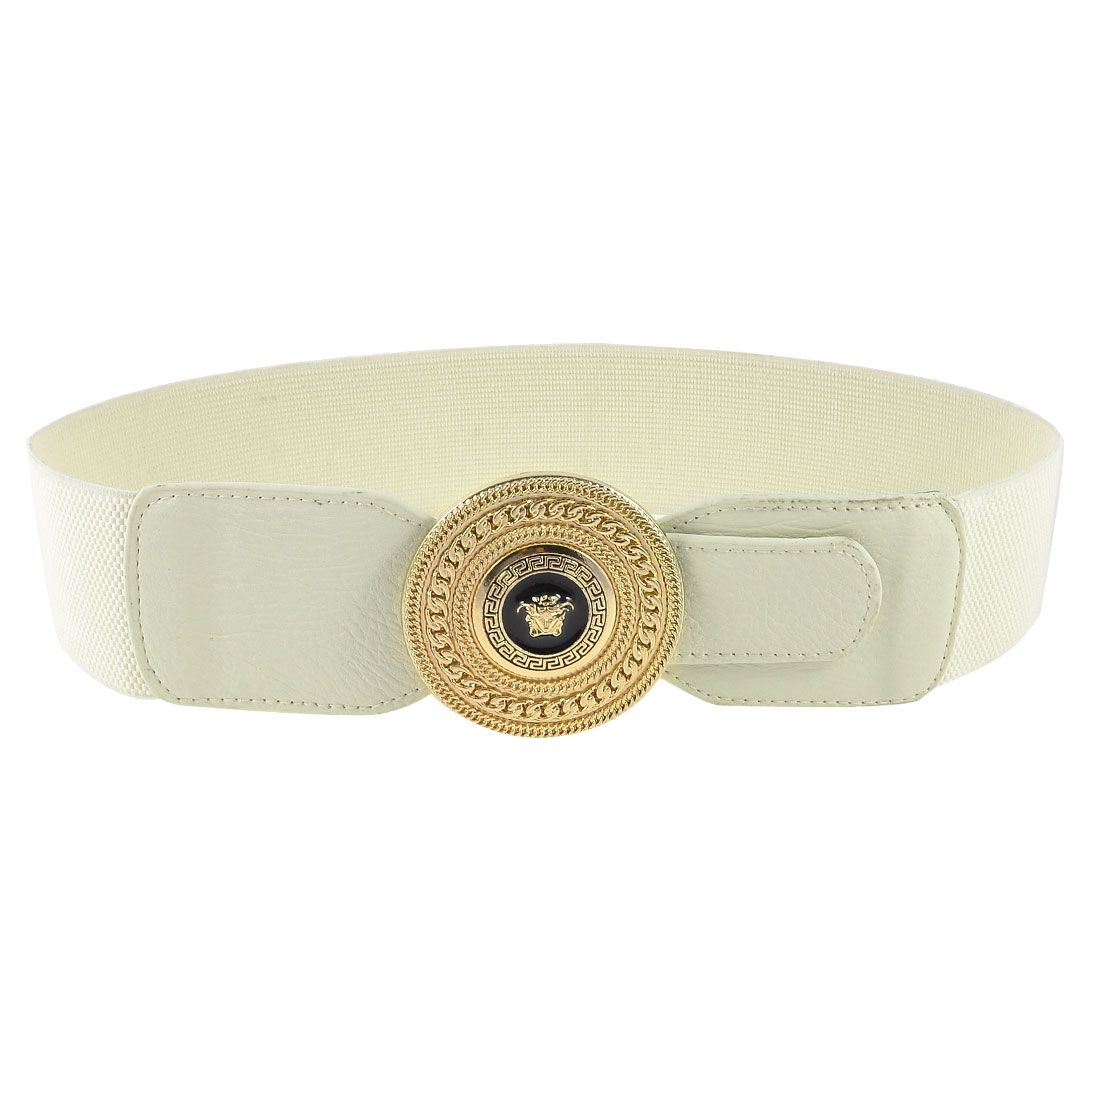 White 6cm Wide Single Prong Buckle Faux Leather Detail Stretchy Cinch Belt Band